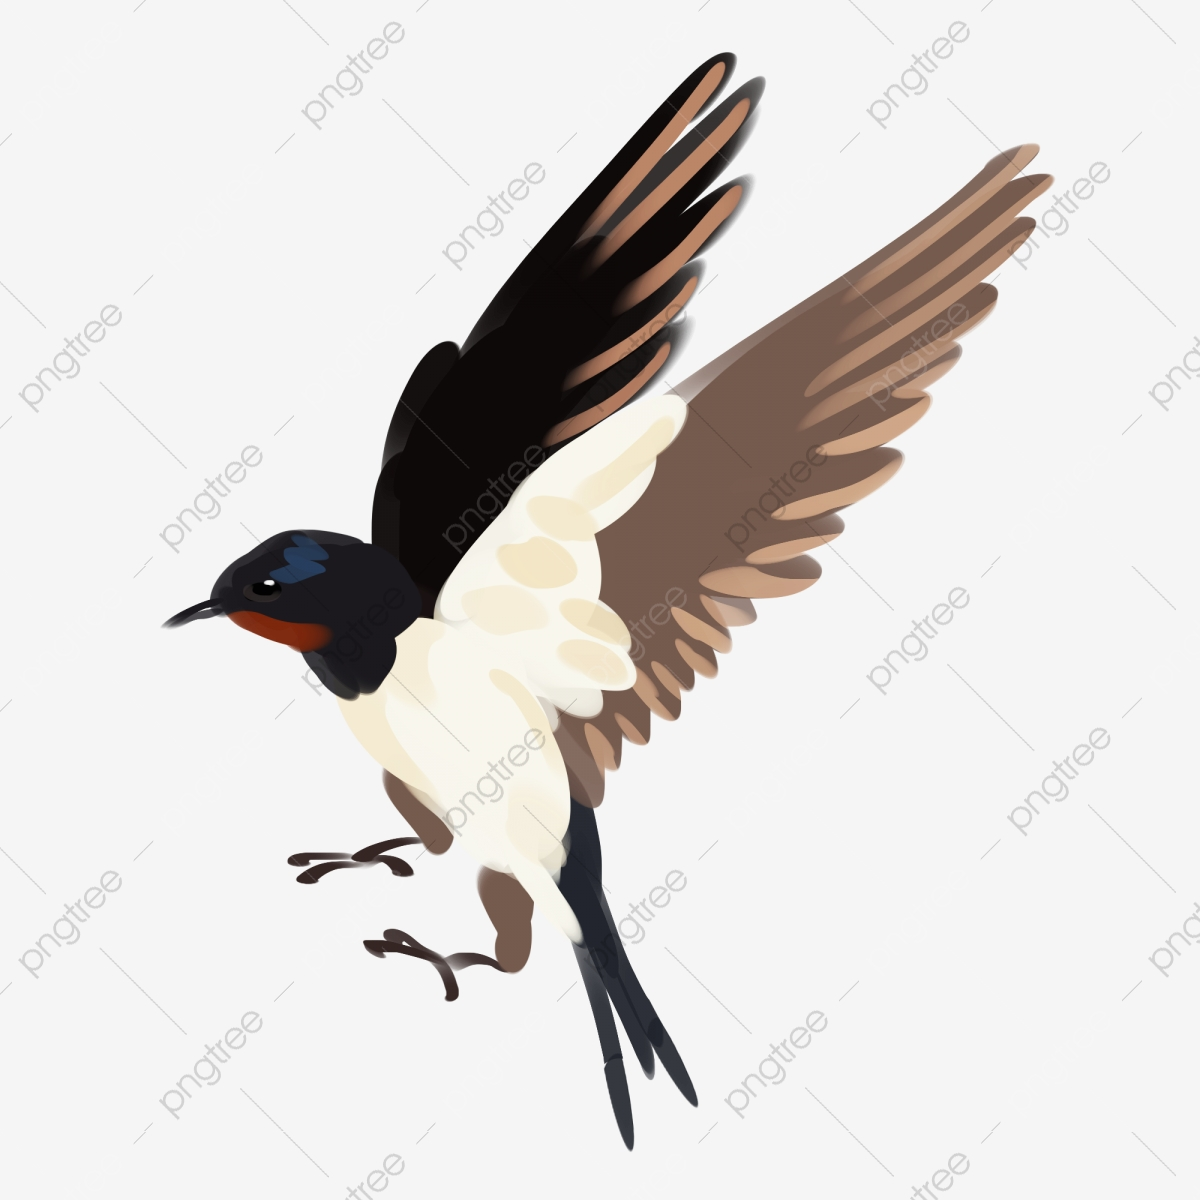 black swallow png images vector and psd files free download on pngtree https pngtree com freepng hand drawn swallow illustration open wings scissors tail black swallow 3903158 html